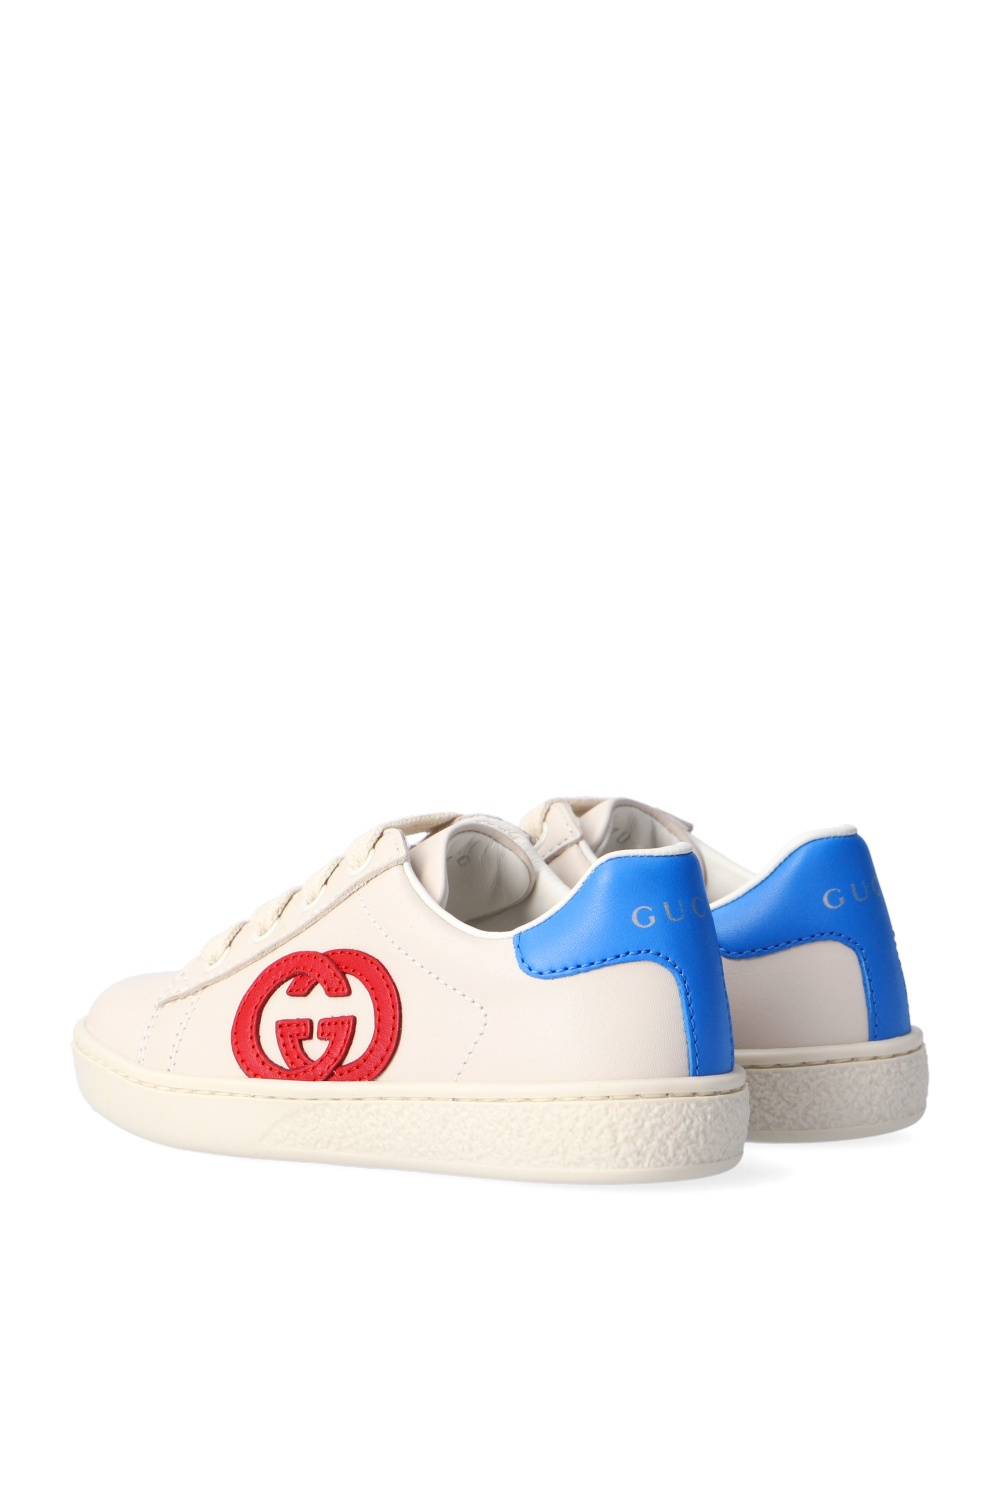 Gucci Kids Sneakers with logo